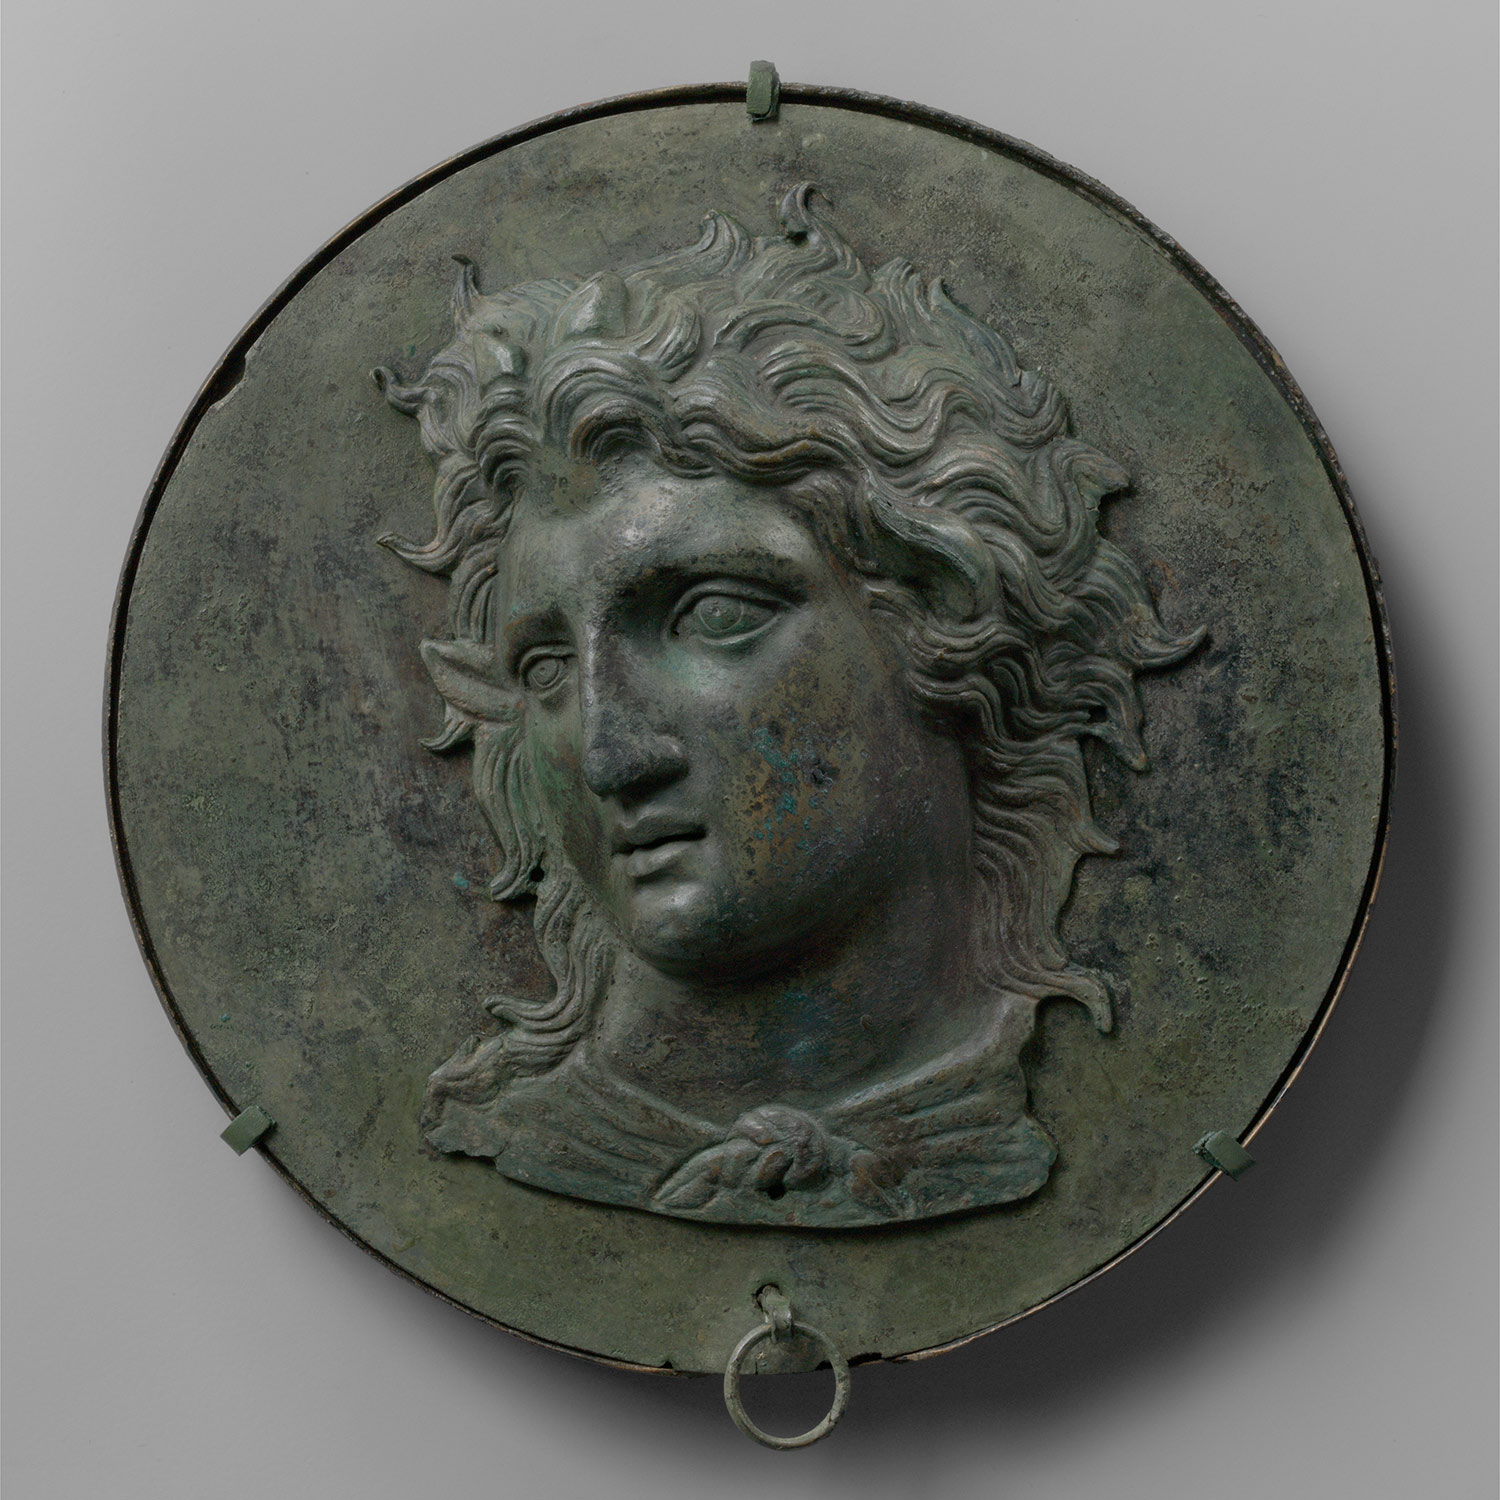 essay on alexander the great or Julius caesar, which army was the ...